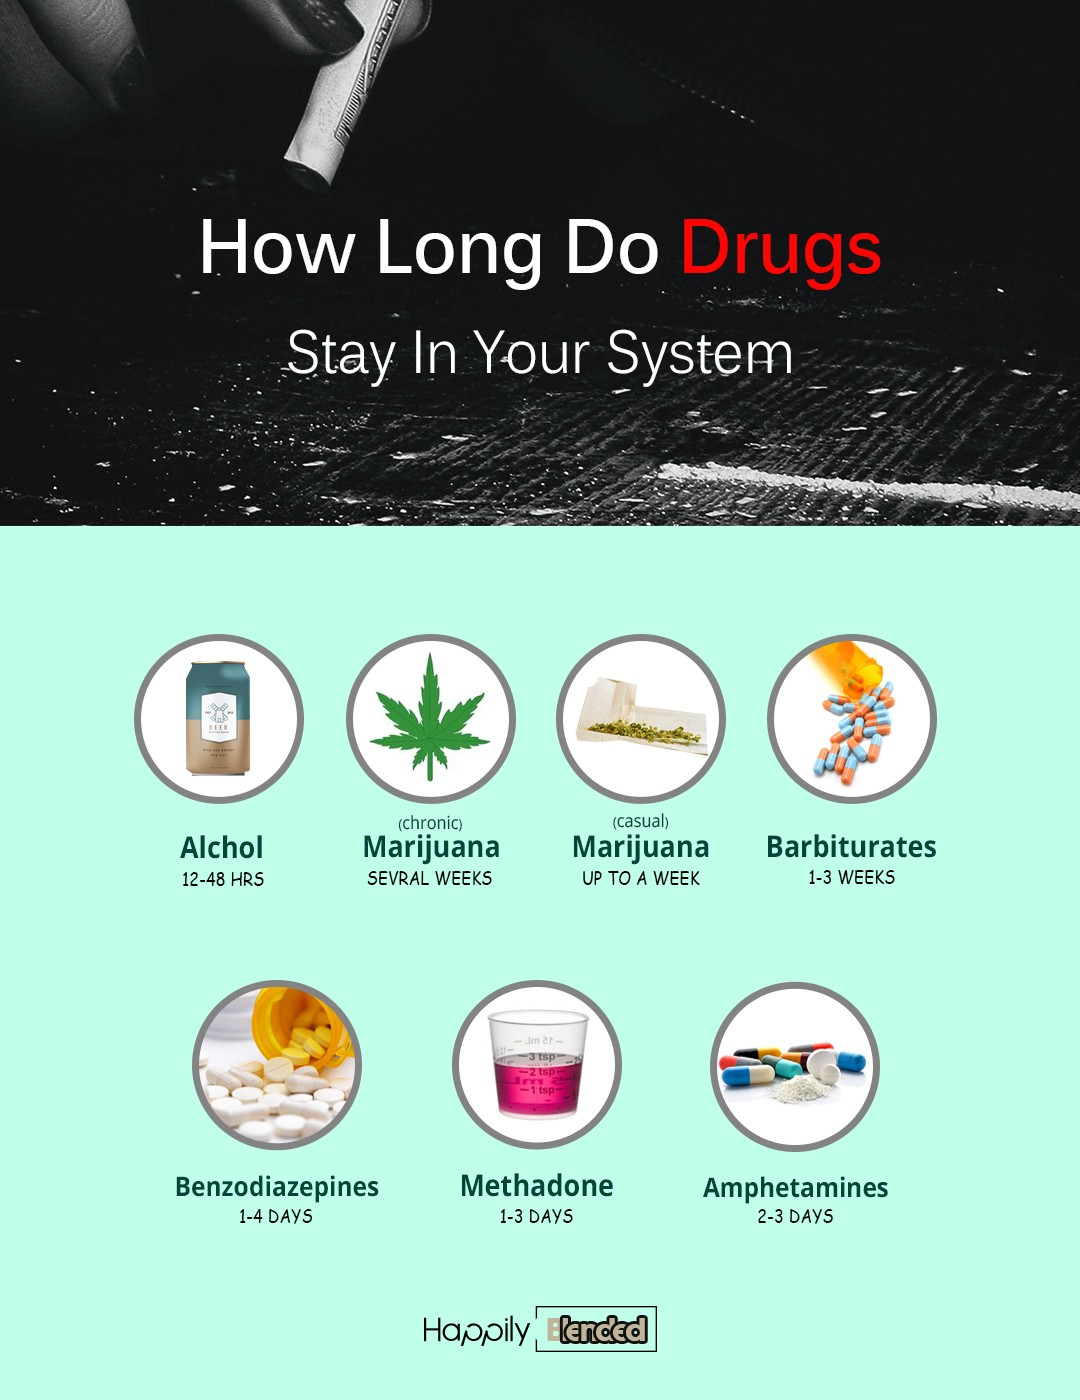 How Long Drugs Stay in Your System